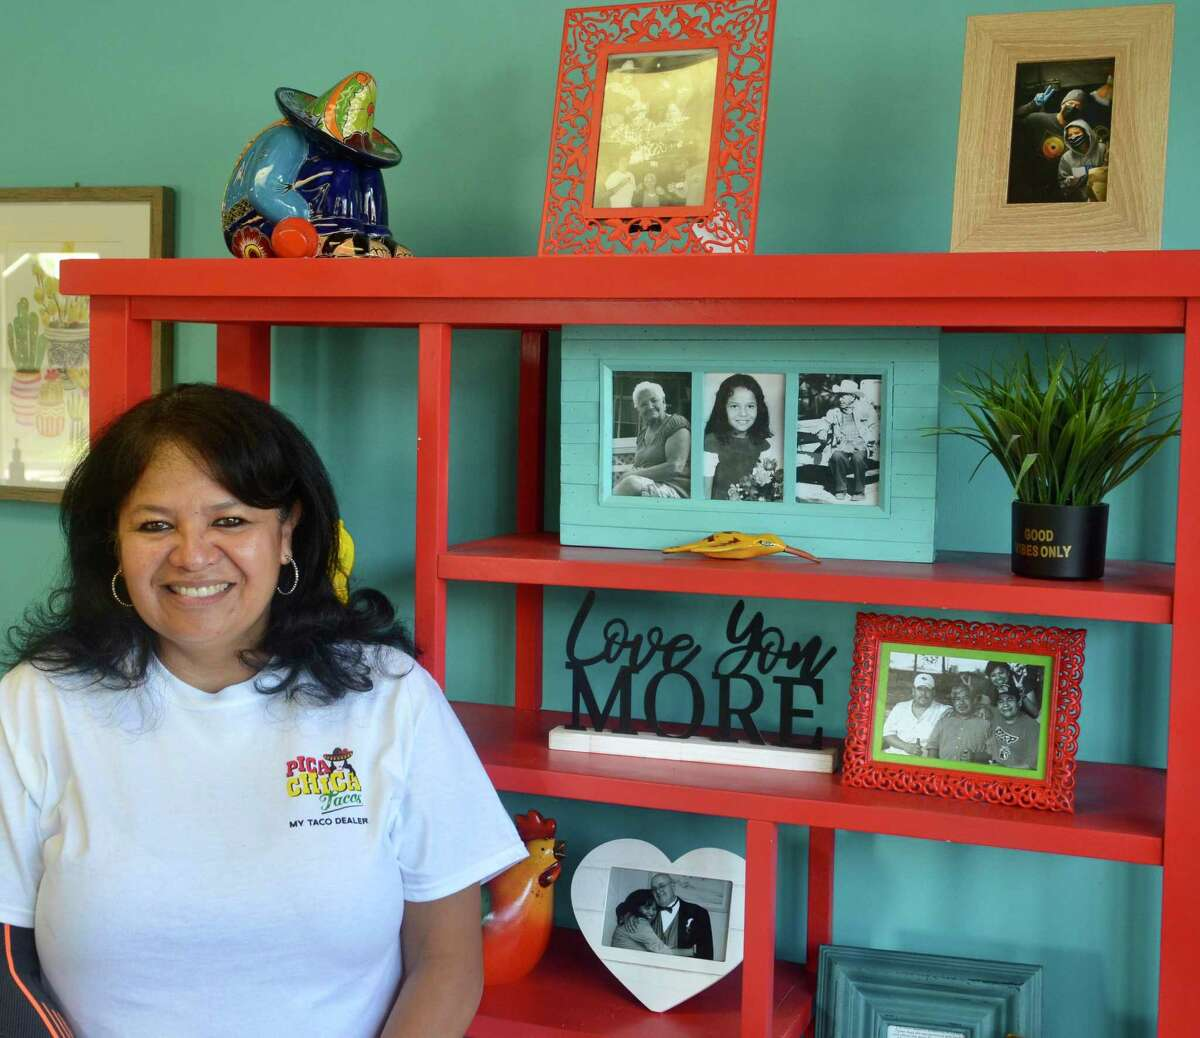 Mari Lee is chef-owner of Chica Pica, a cantina-style eatery that just opened in Clinton.